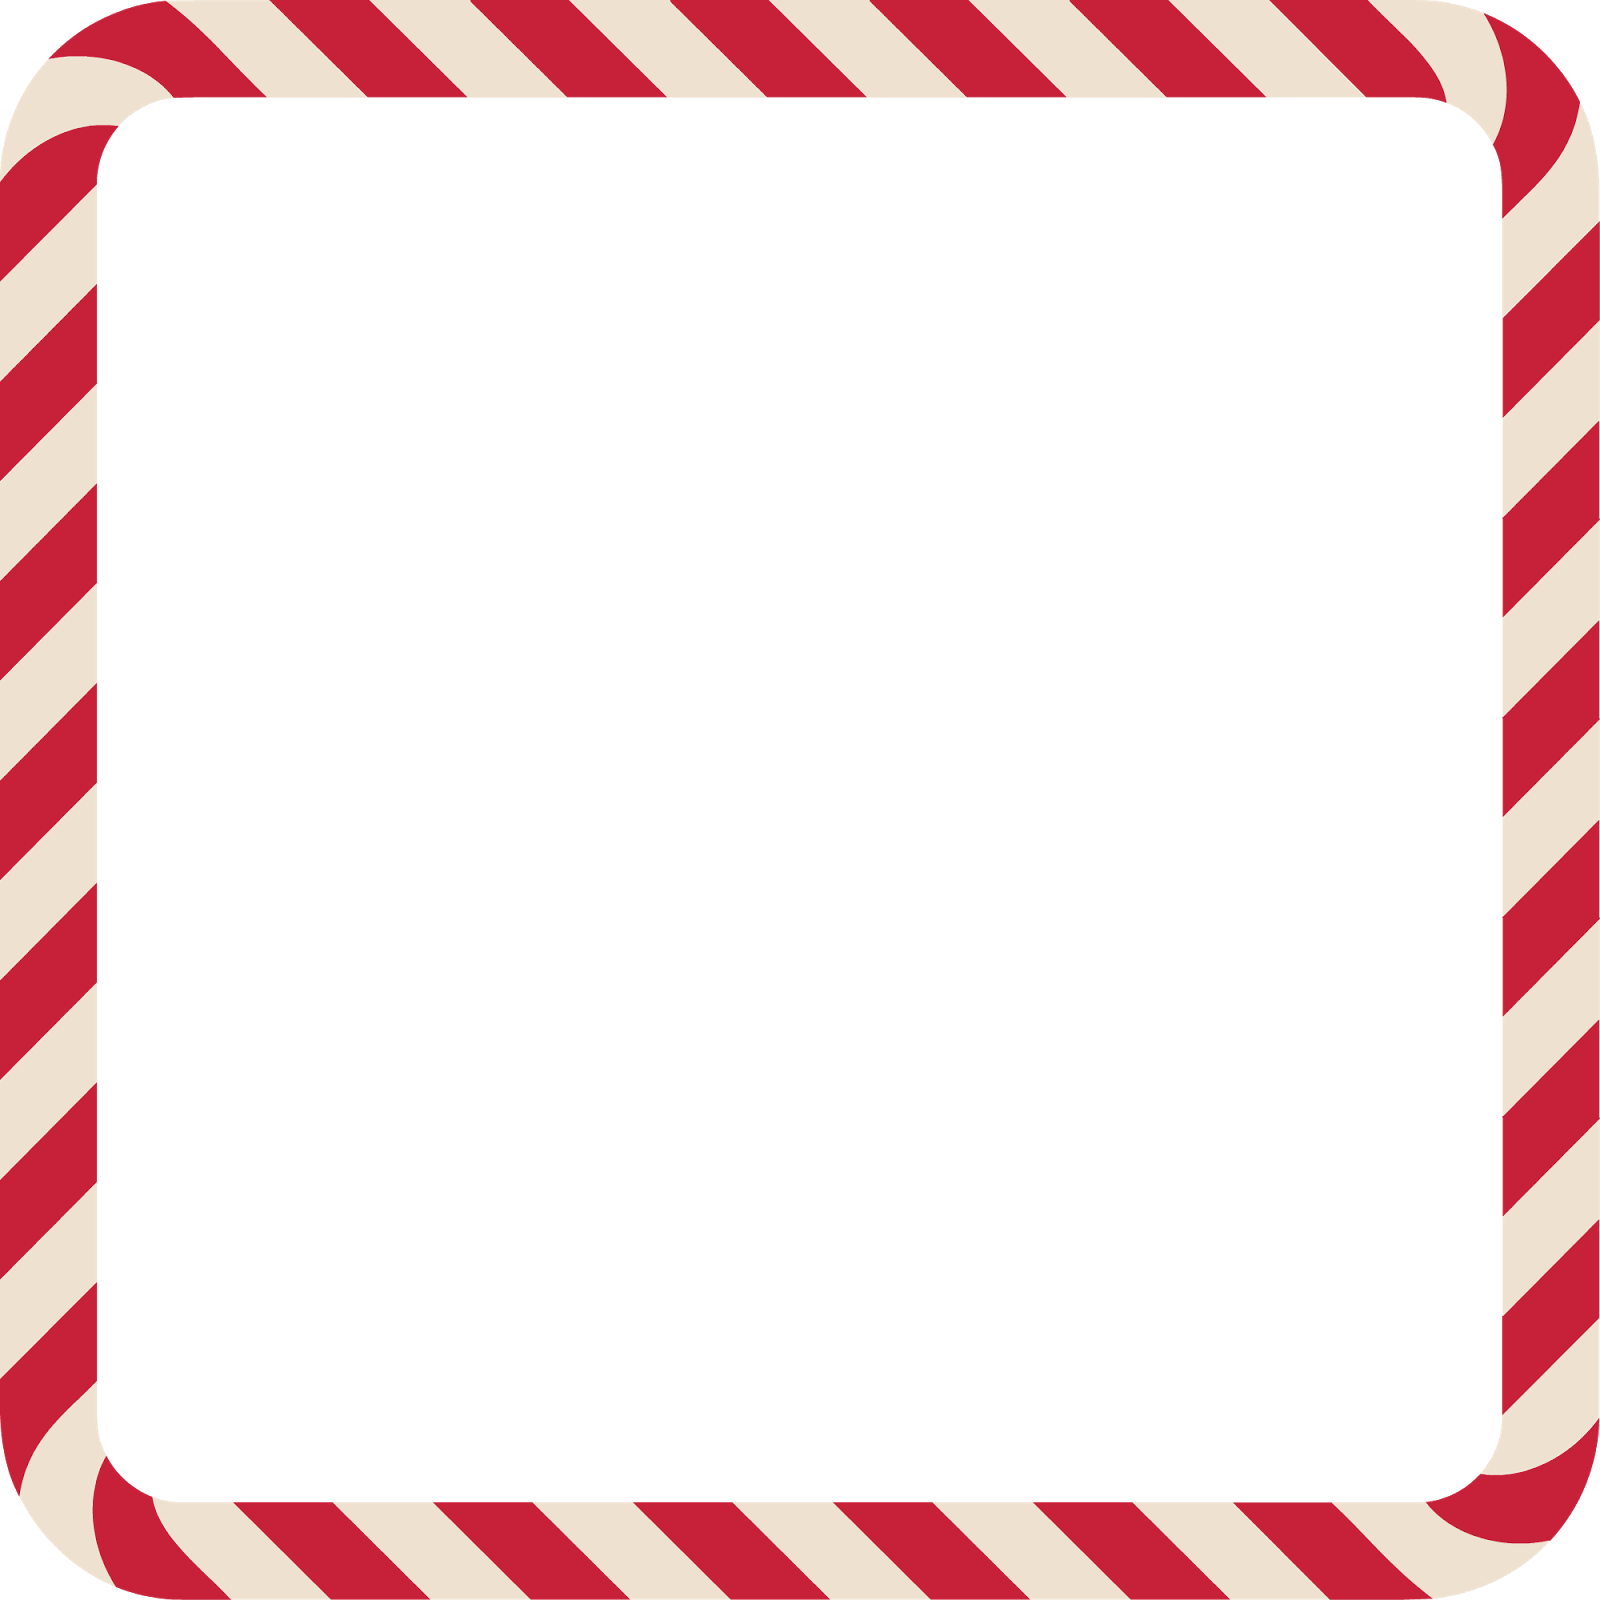 Christmas Elf Candy Cane Frame Vector Clipart.